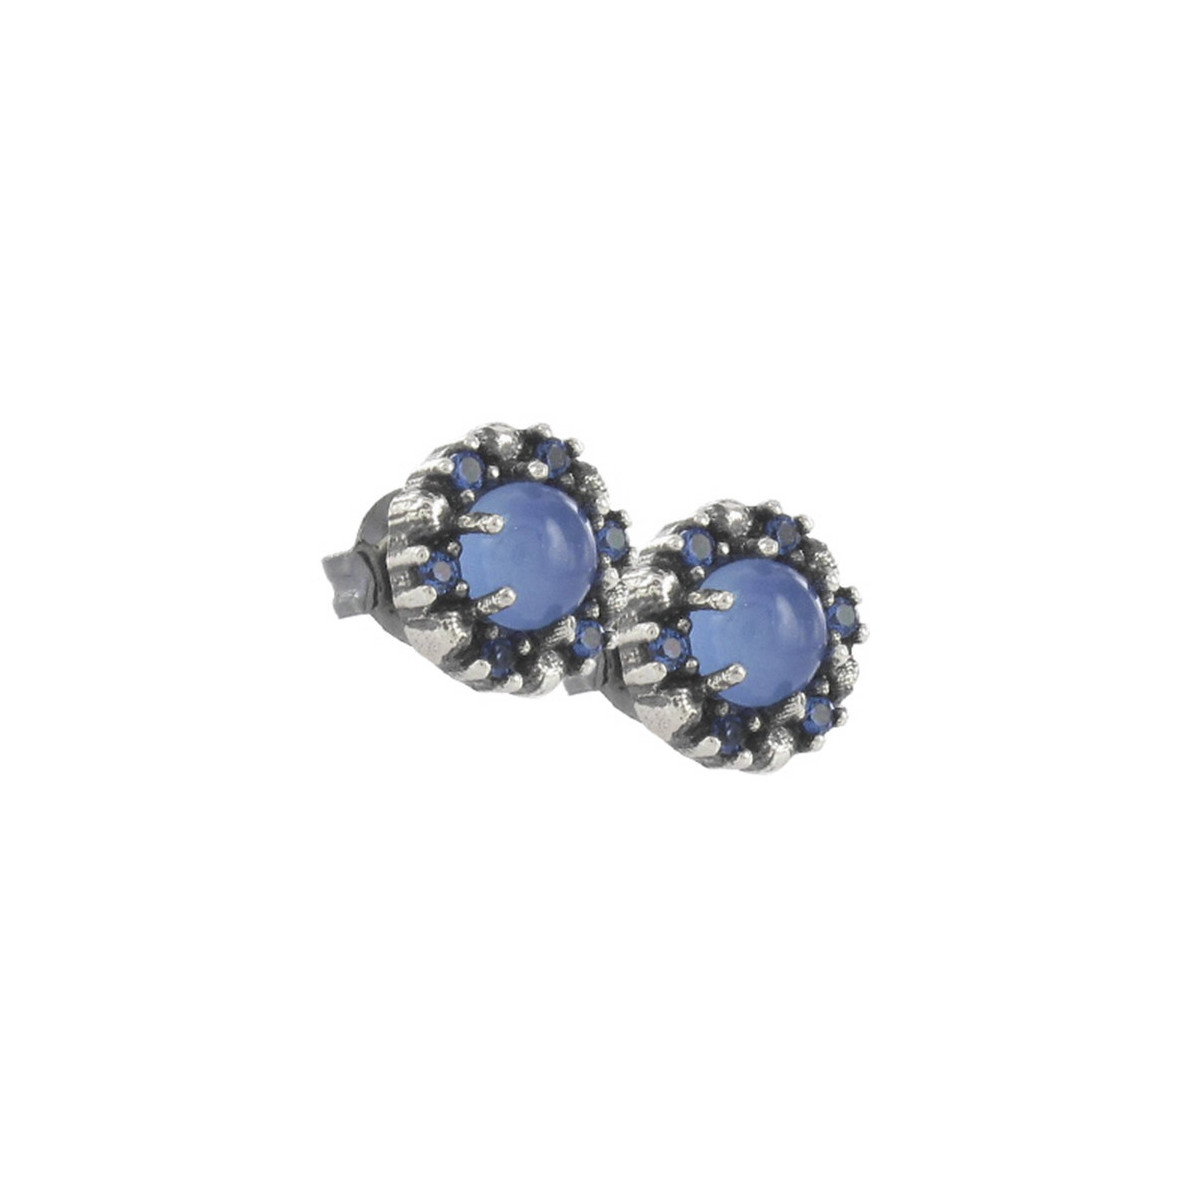 SILVER EARRINGS AND CHALCEDONY